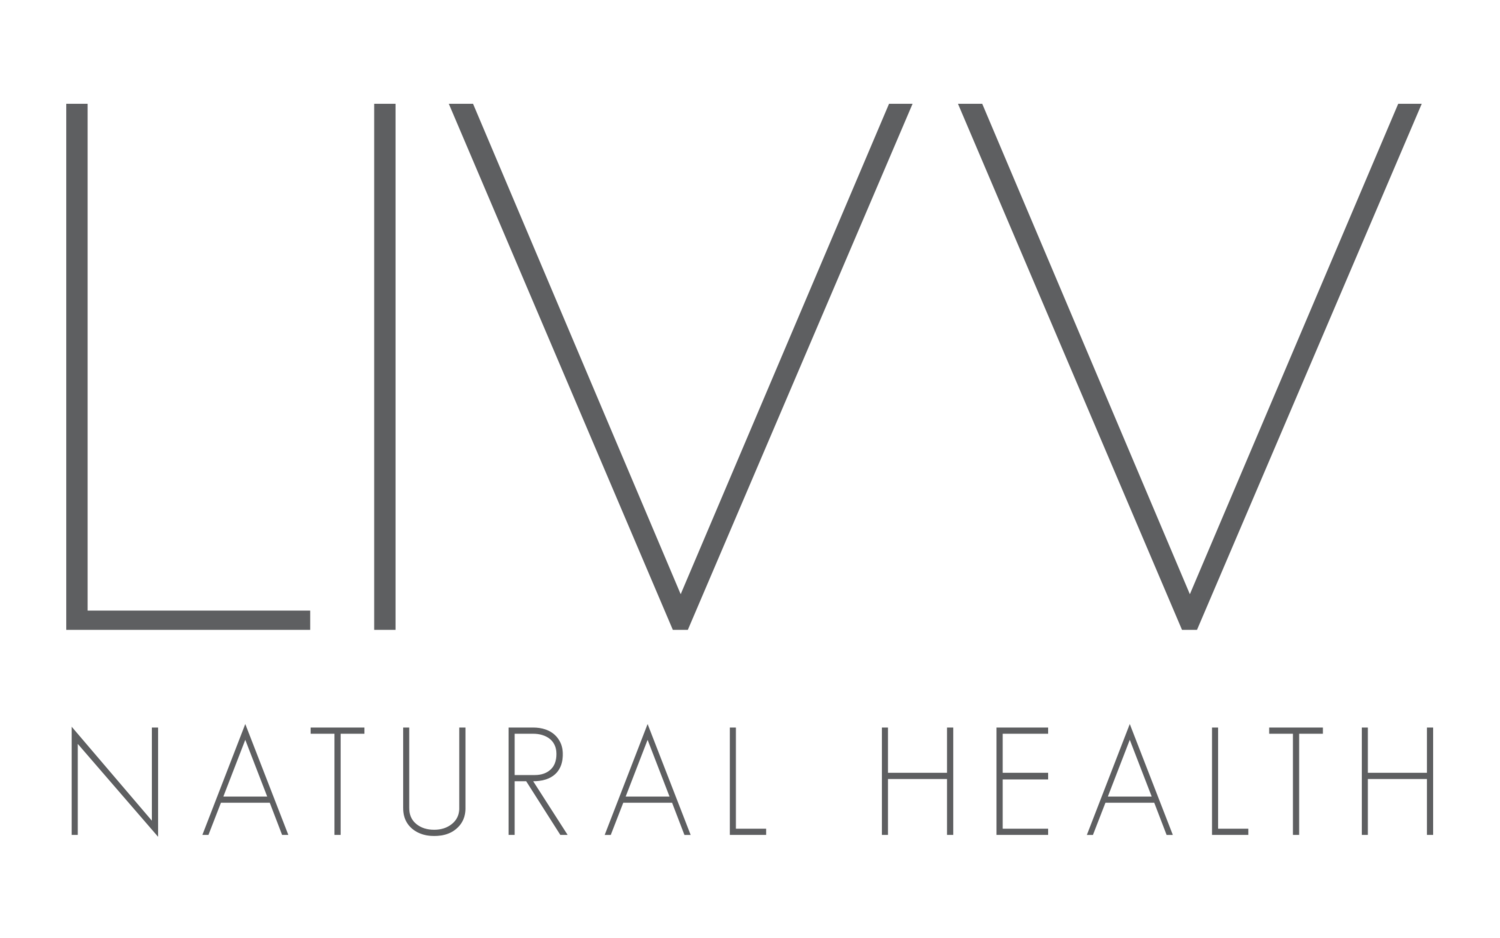 LIVV Natural Health | IV Drip Therapy